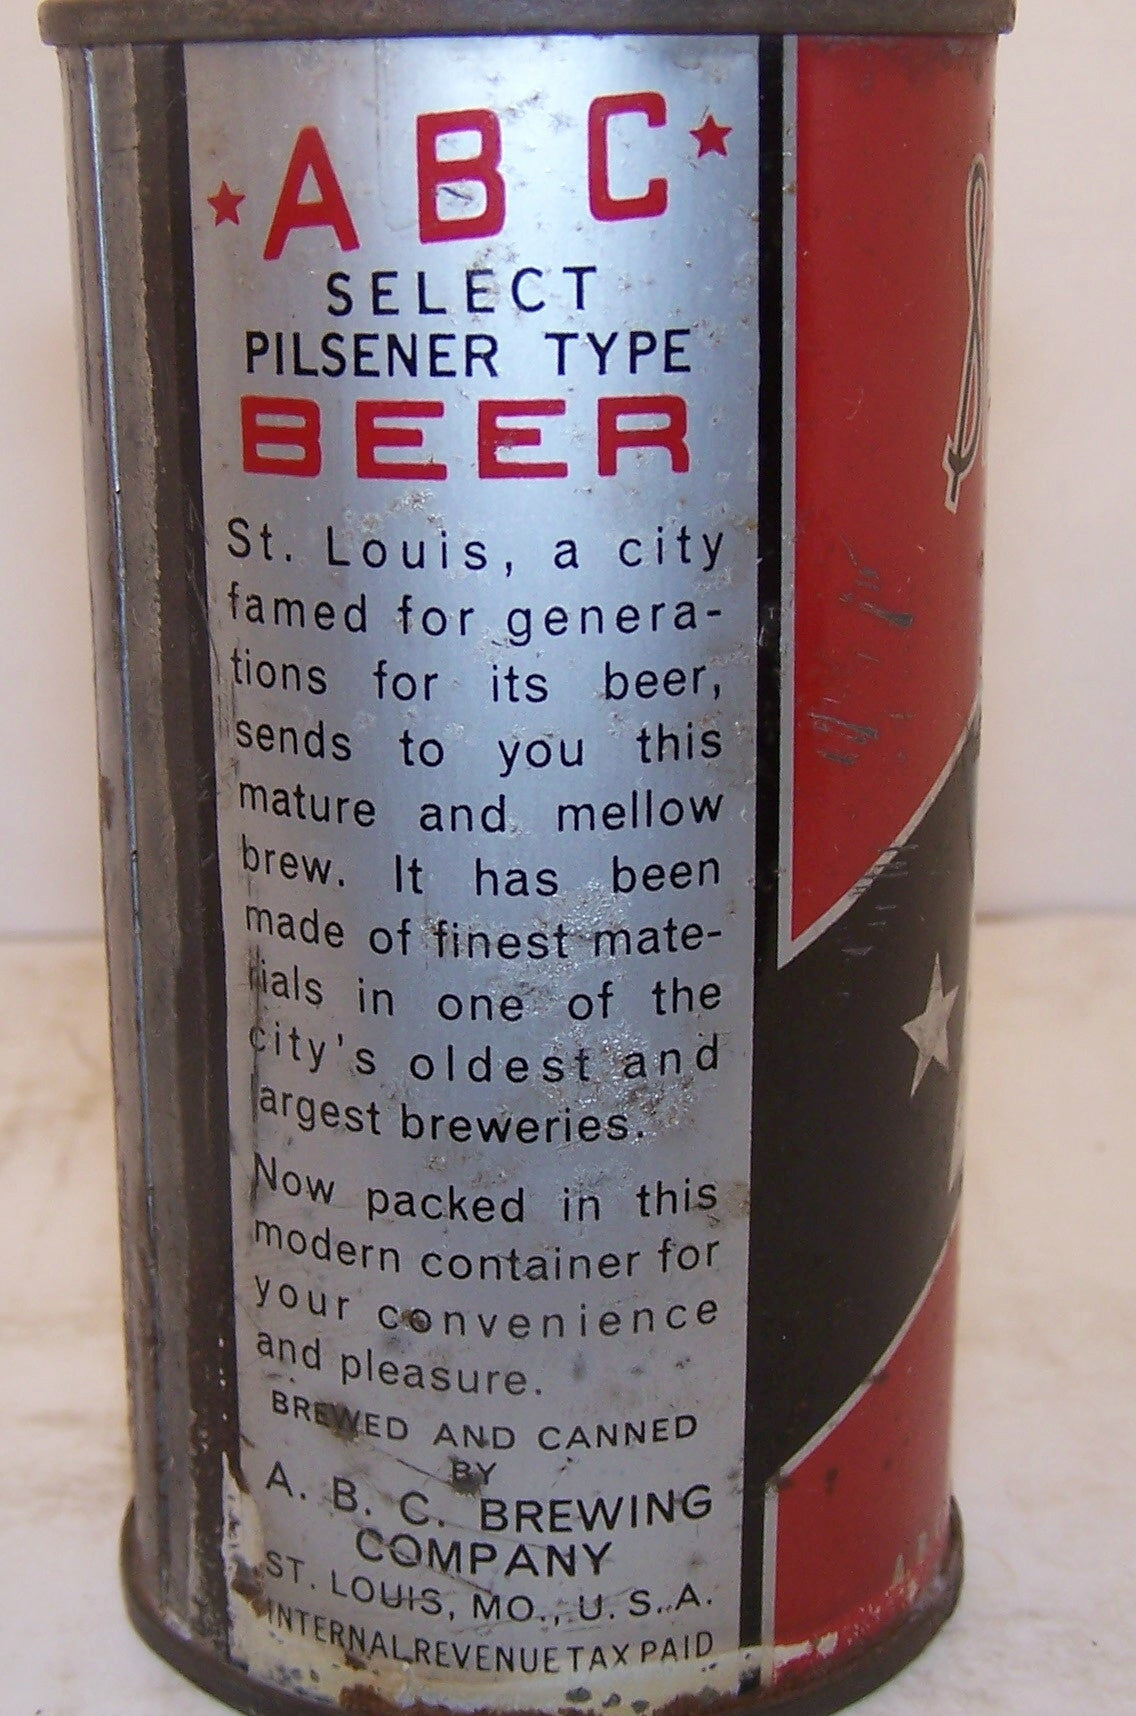 ABC Pilsener Type Beer, Lilek page # 5, Grade 2+ Sold on 10/07/17